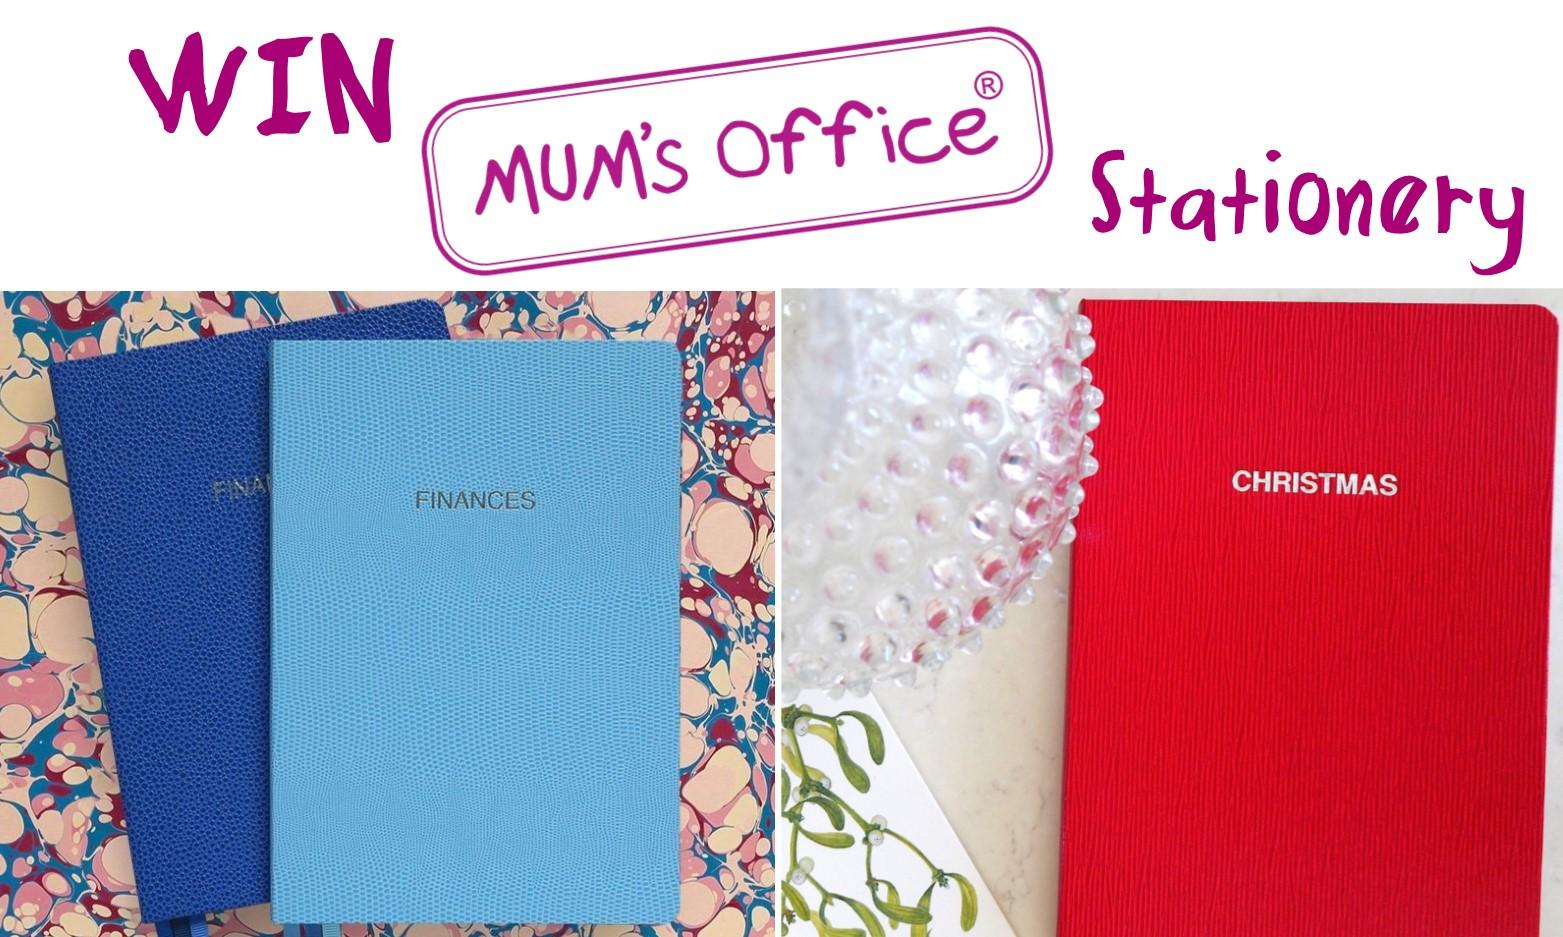 WIN a Mum's Office BLOX Financial Diary and a MUM's Christmas Book